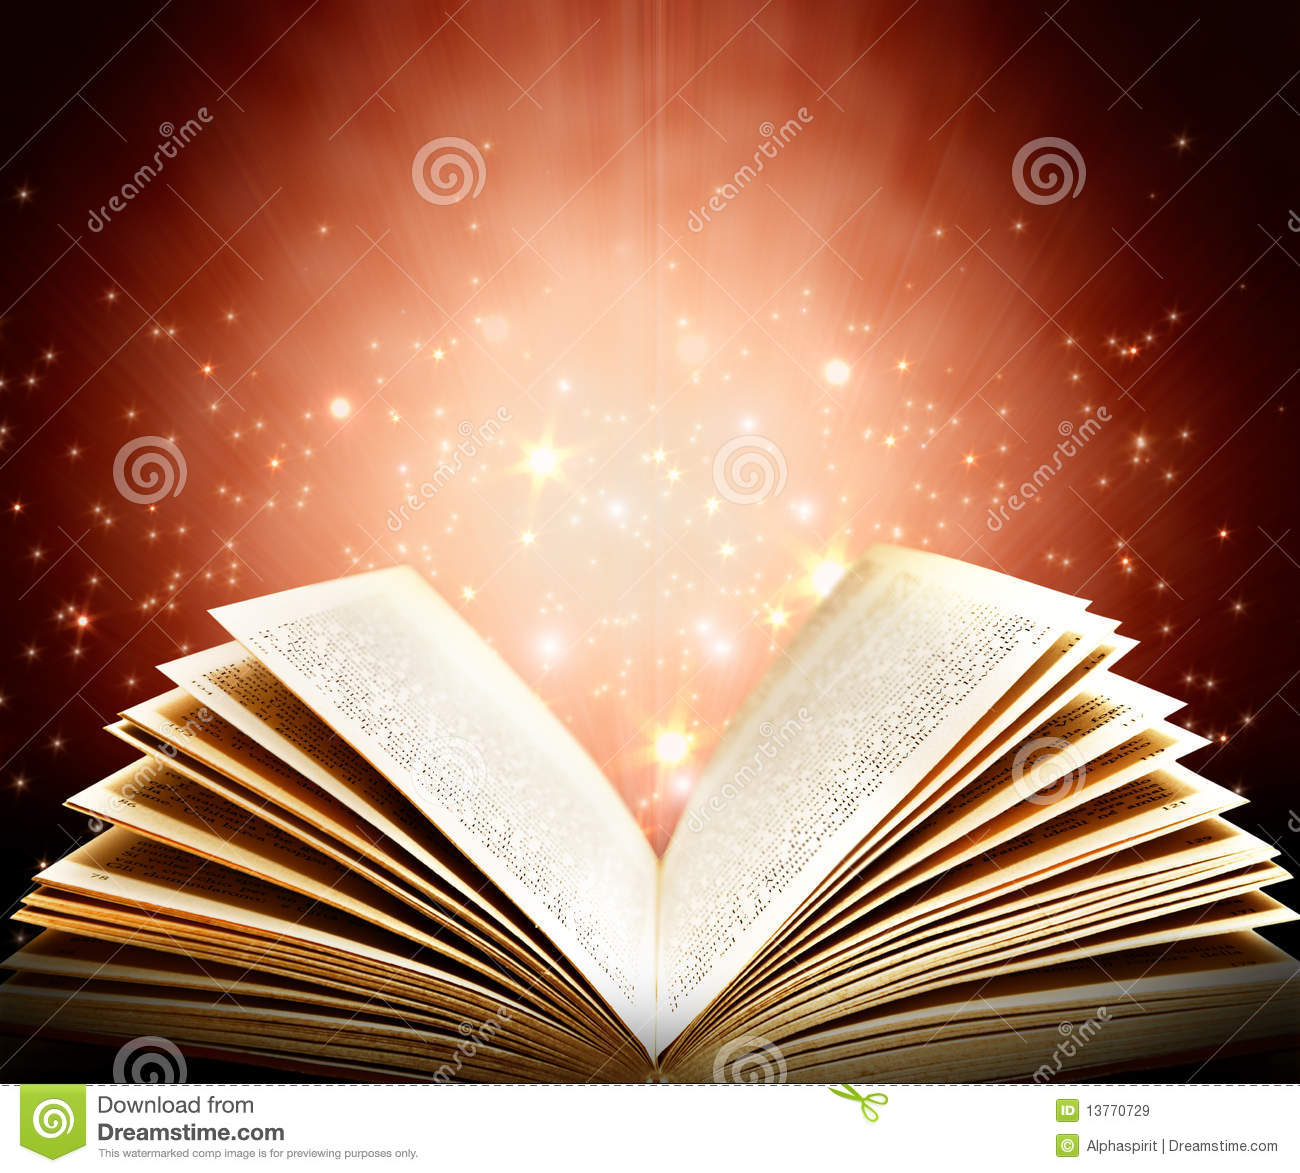 Magic book stock image. Image of turning, spark, mystery